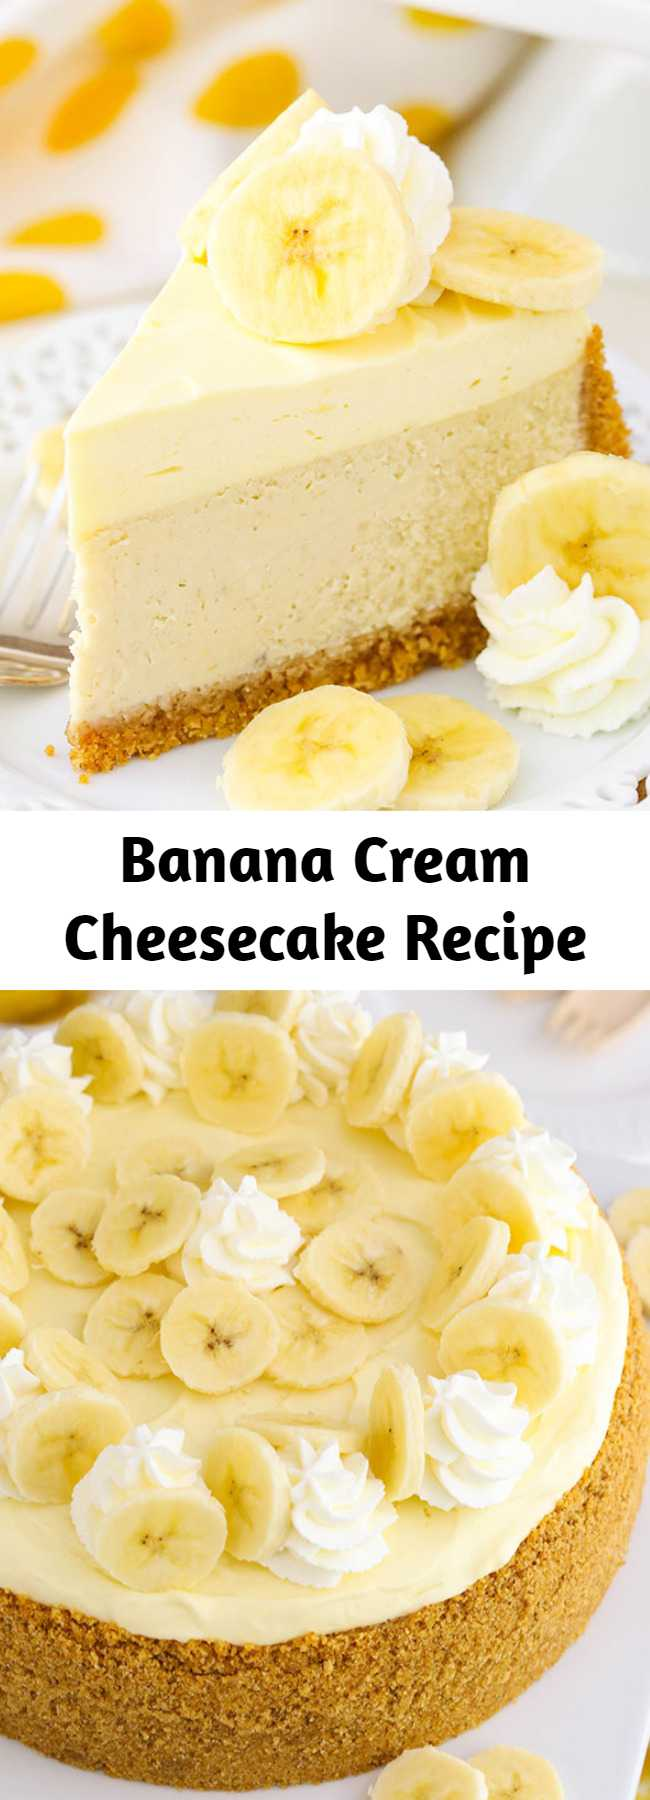 This Banana Cream Cheesecake Recipe is made with a fresh banana cheesecake topped with banana bavarian cream! It's smooth, creamy & full of banana flavor! #cheesecake #cheesecakerecipe